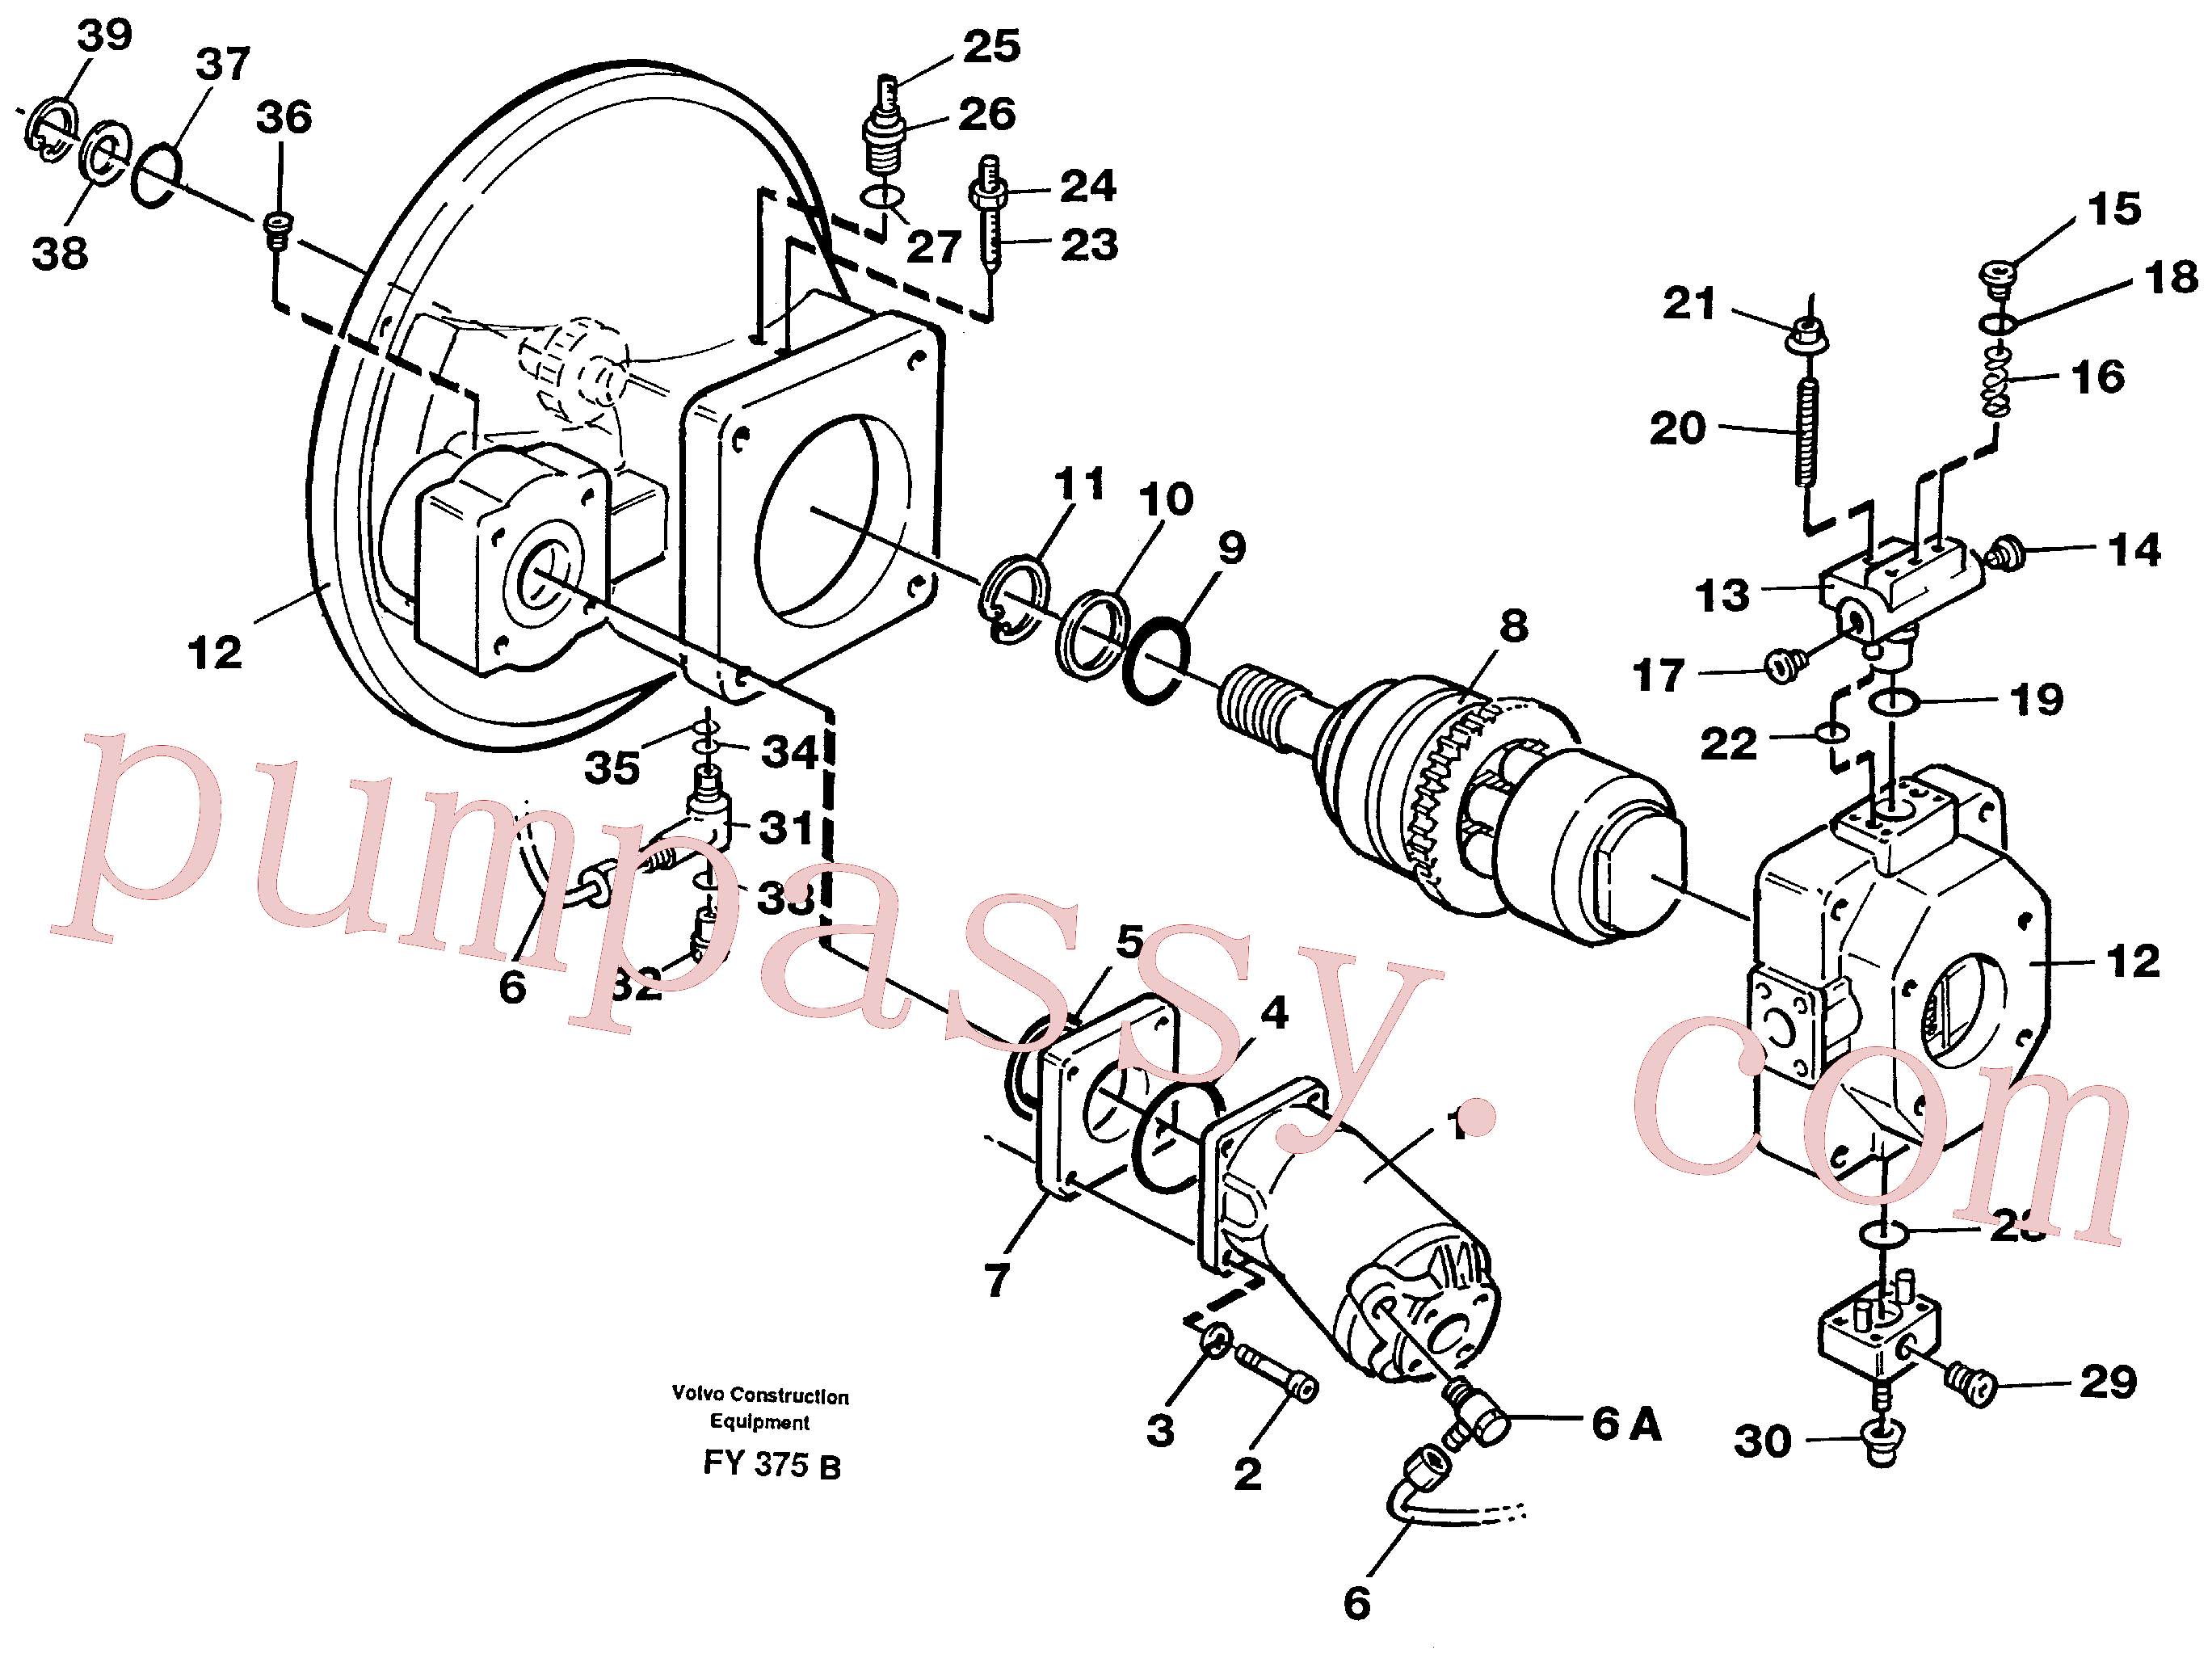 VOE14016903 for Volvo Pump gear box(FY375B assembly)